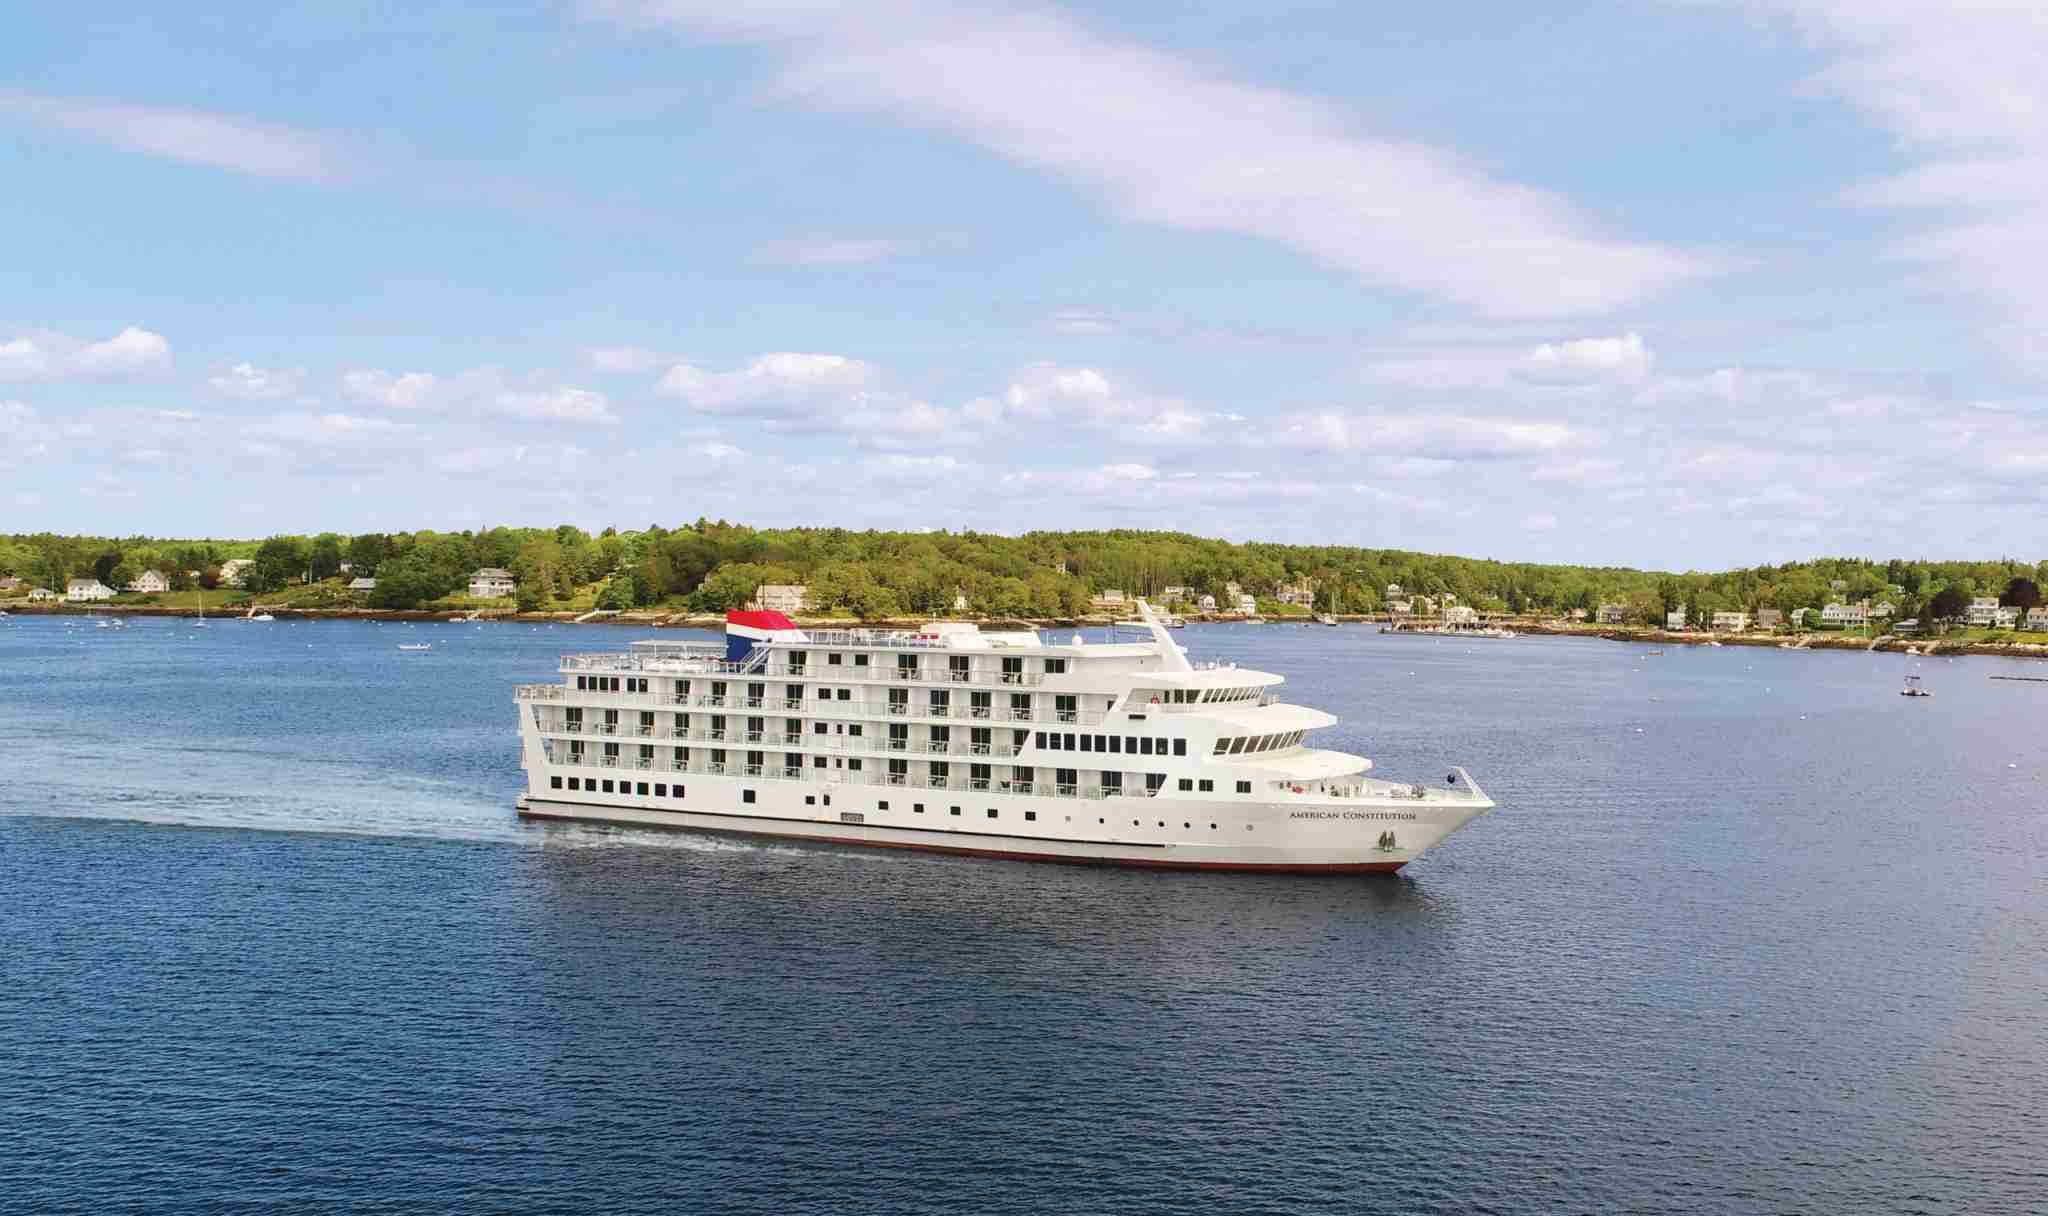 American Cruise Lines operates the 175-passenger American Constitution in New England. (Photo courtesy of American Cruise Lines)